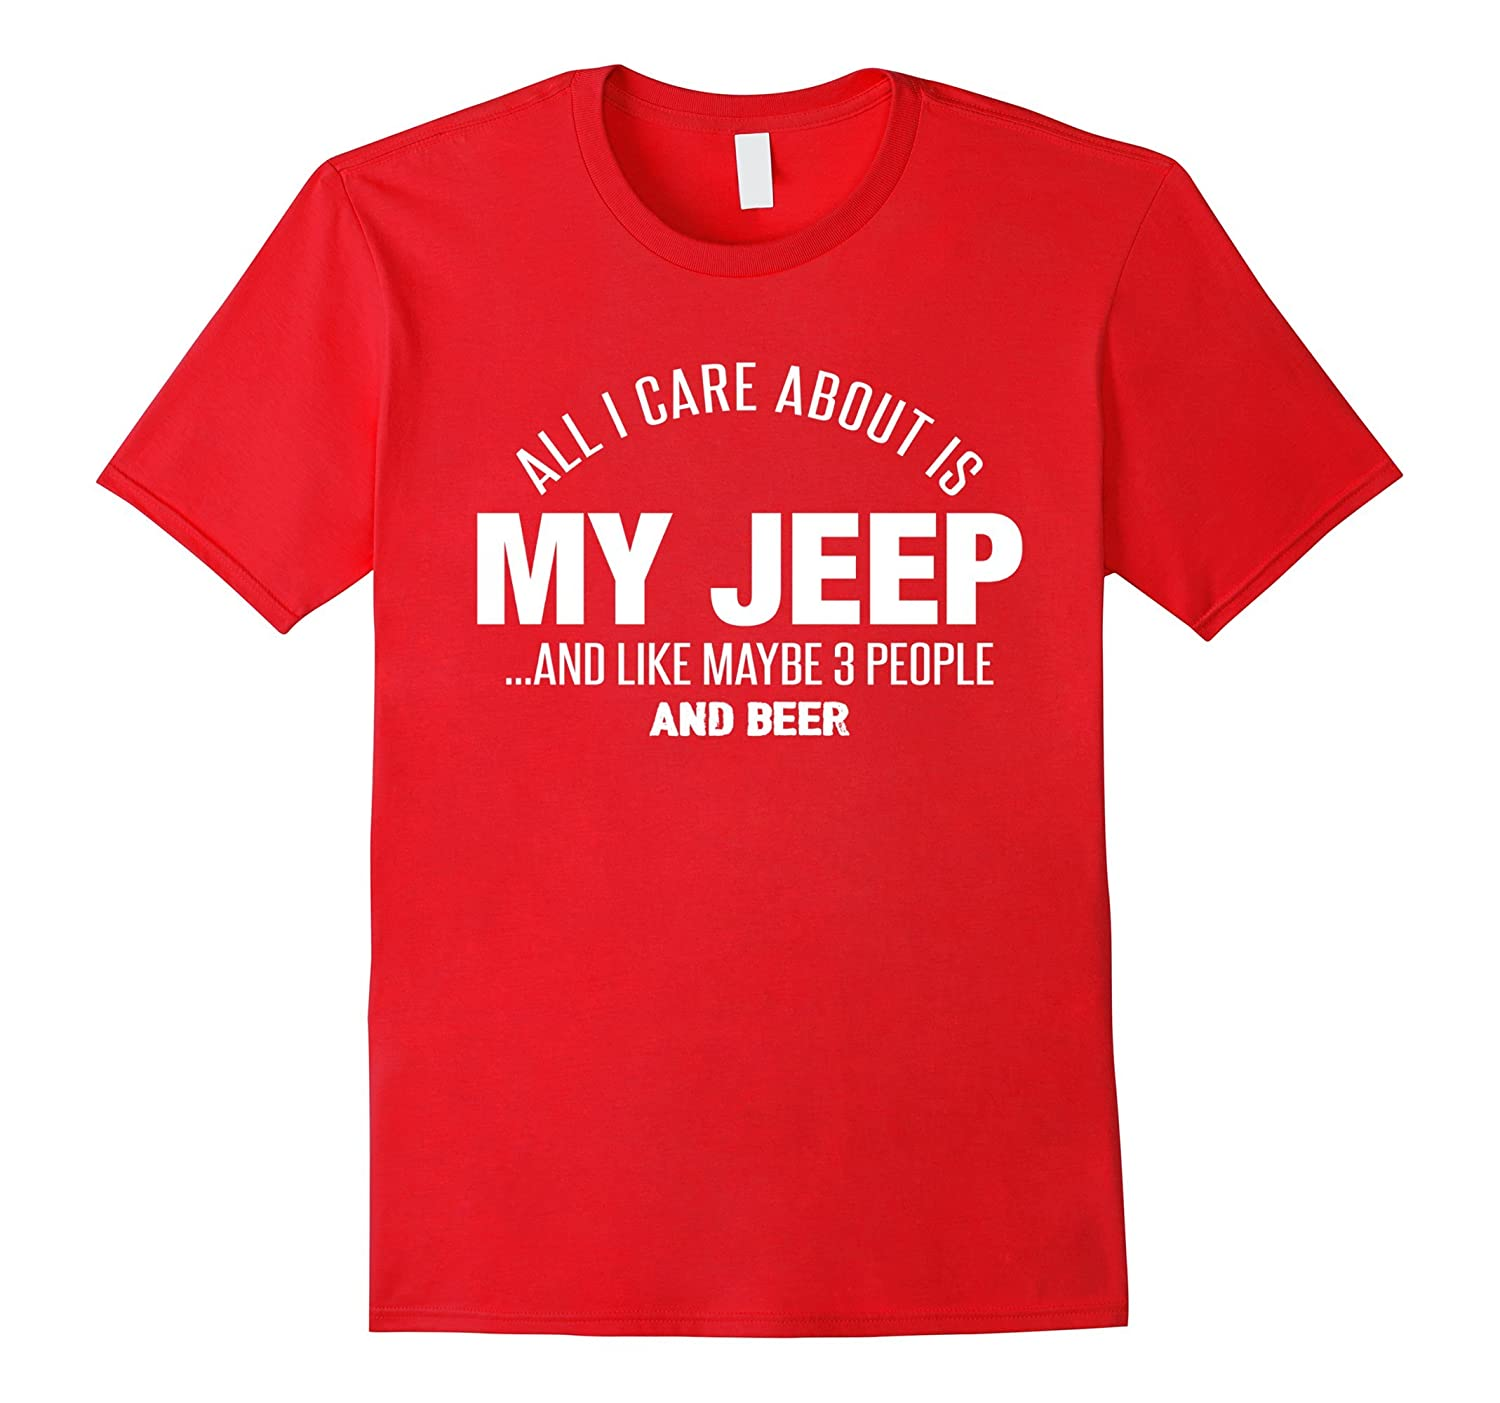 All I care about is my jeep and like maybe 3 people and beer-BN